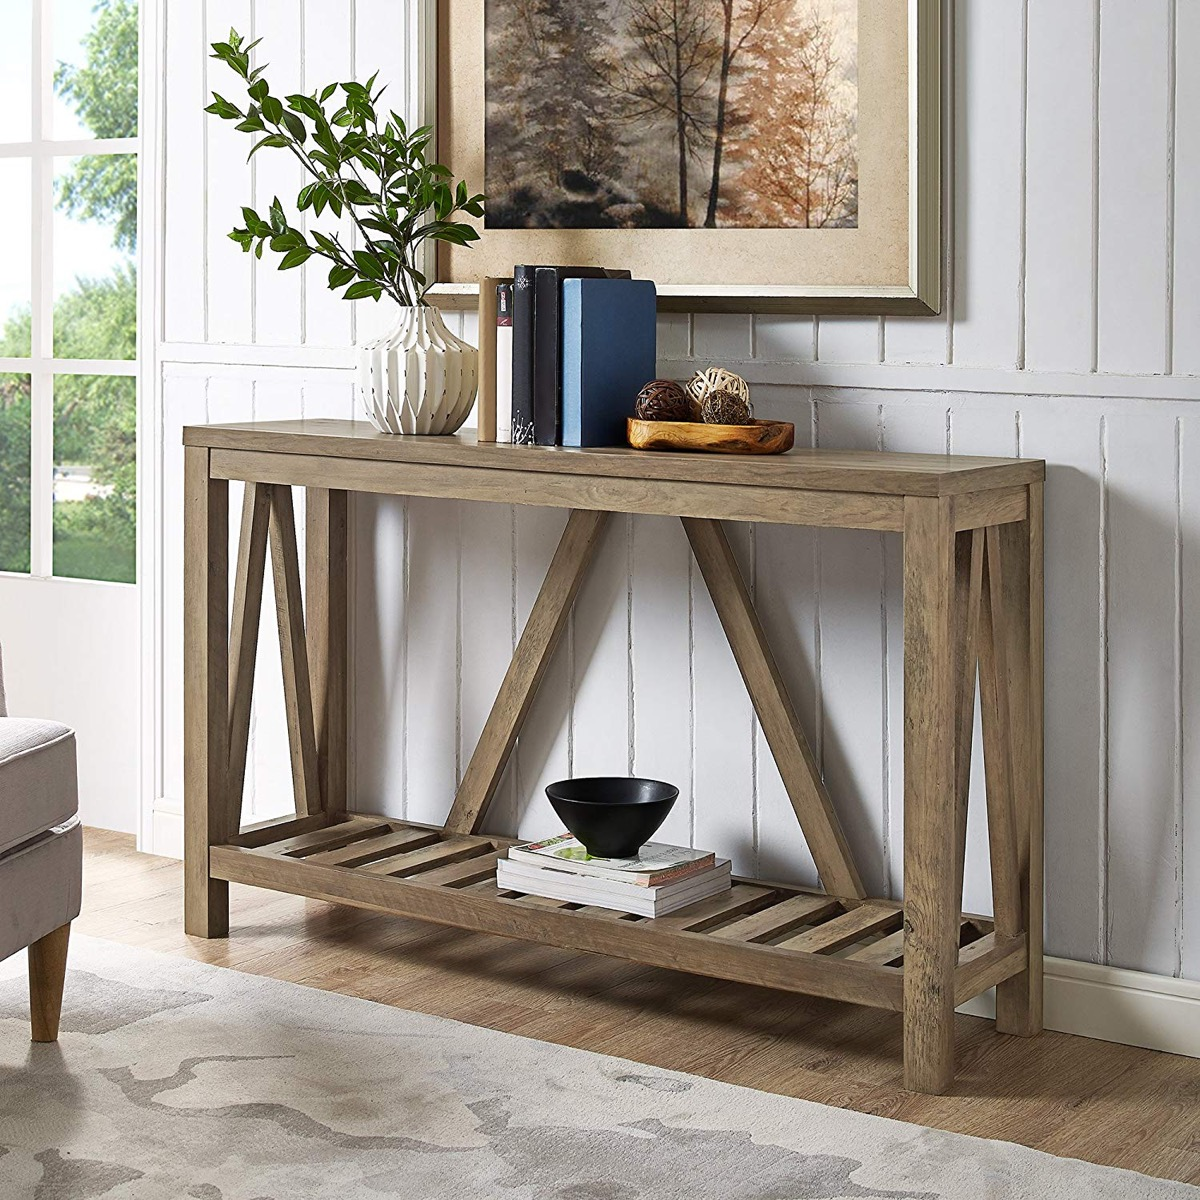 rustic-entryway-table-with-trestle-base-and-palette-style-lower-shelf